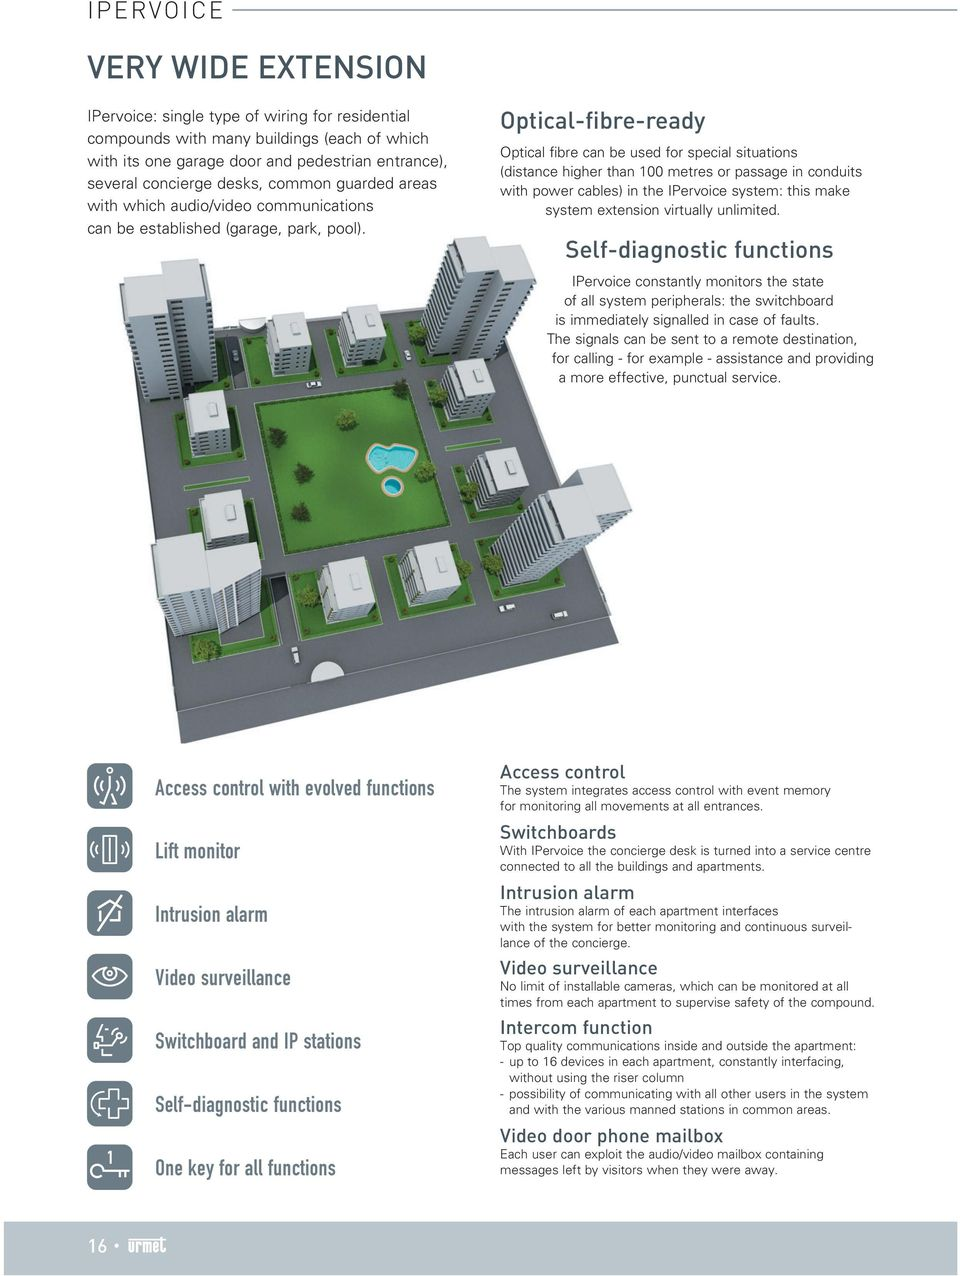 Digivoice Large Residential Compounds With Several Entrances And Garage Electrical Wiring Besides Plans Moreover Motion Optical Fibre Ready Can Be Used For Special Situations Distance Higher 10 Integrated Systems External